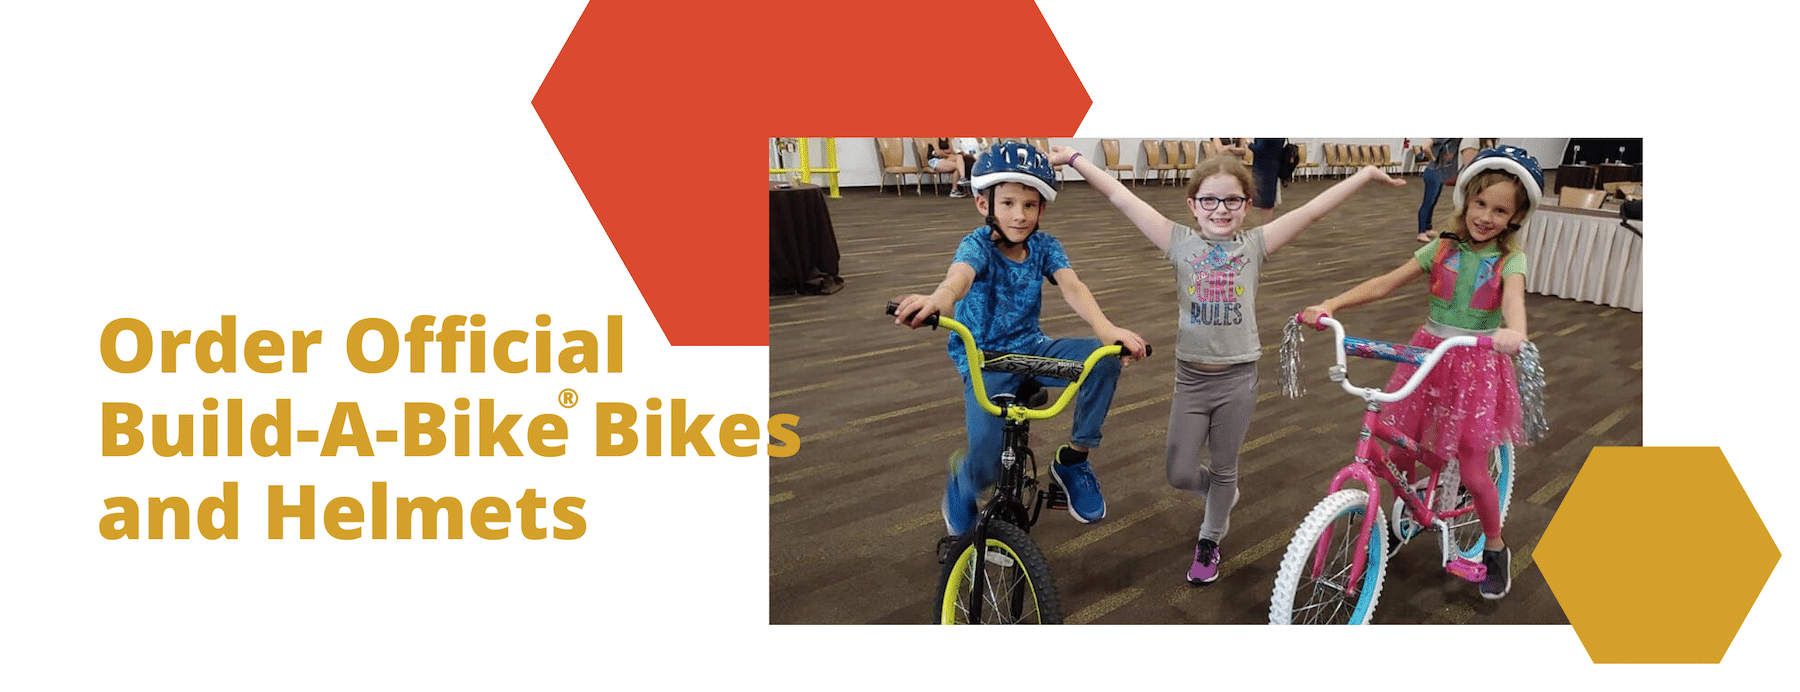 Instructions for Build-A-Bike Team Building